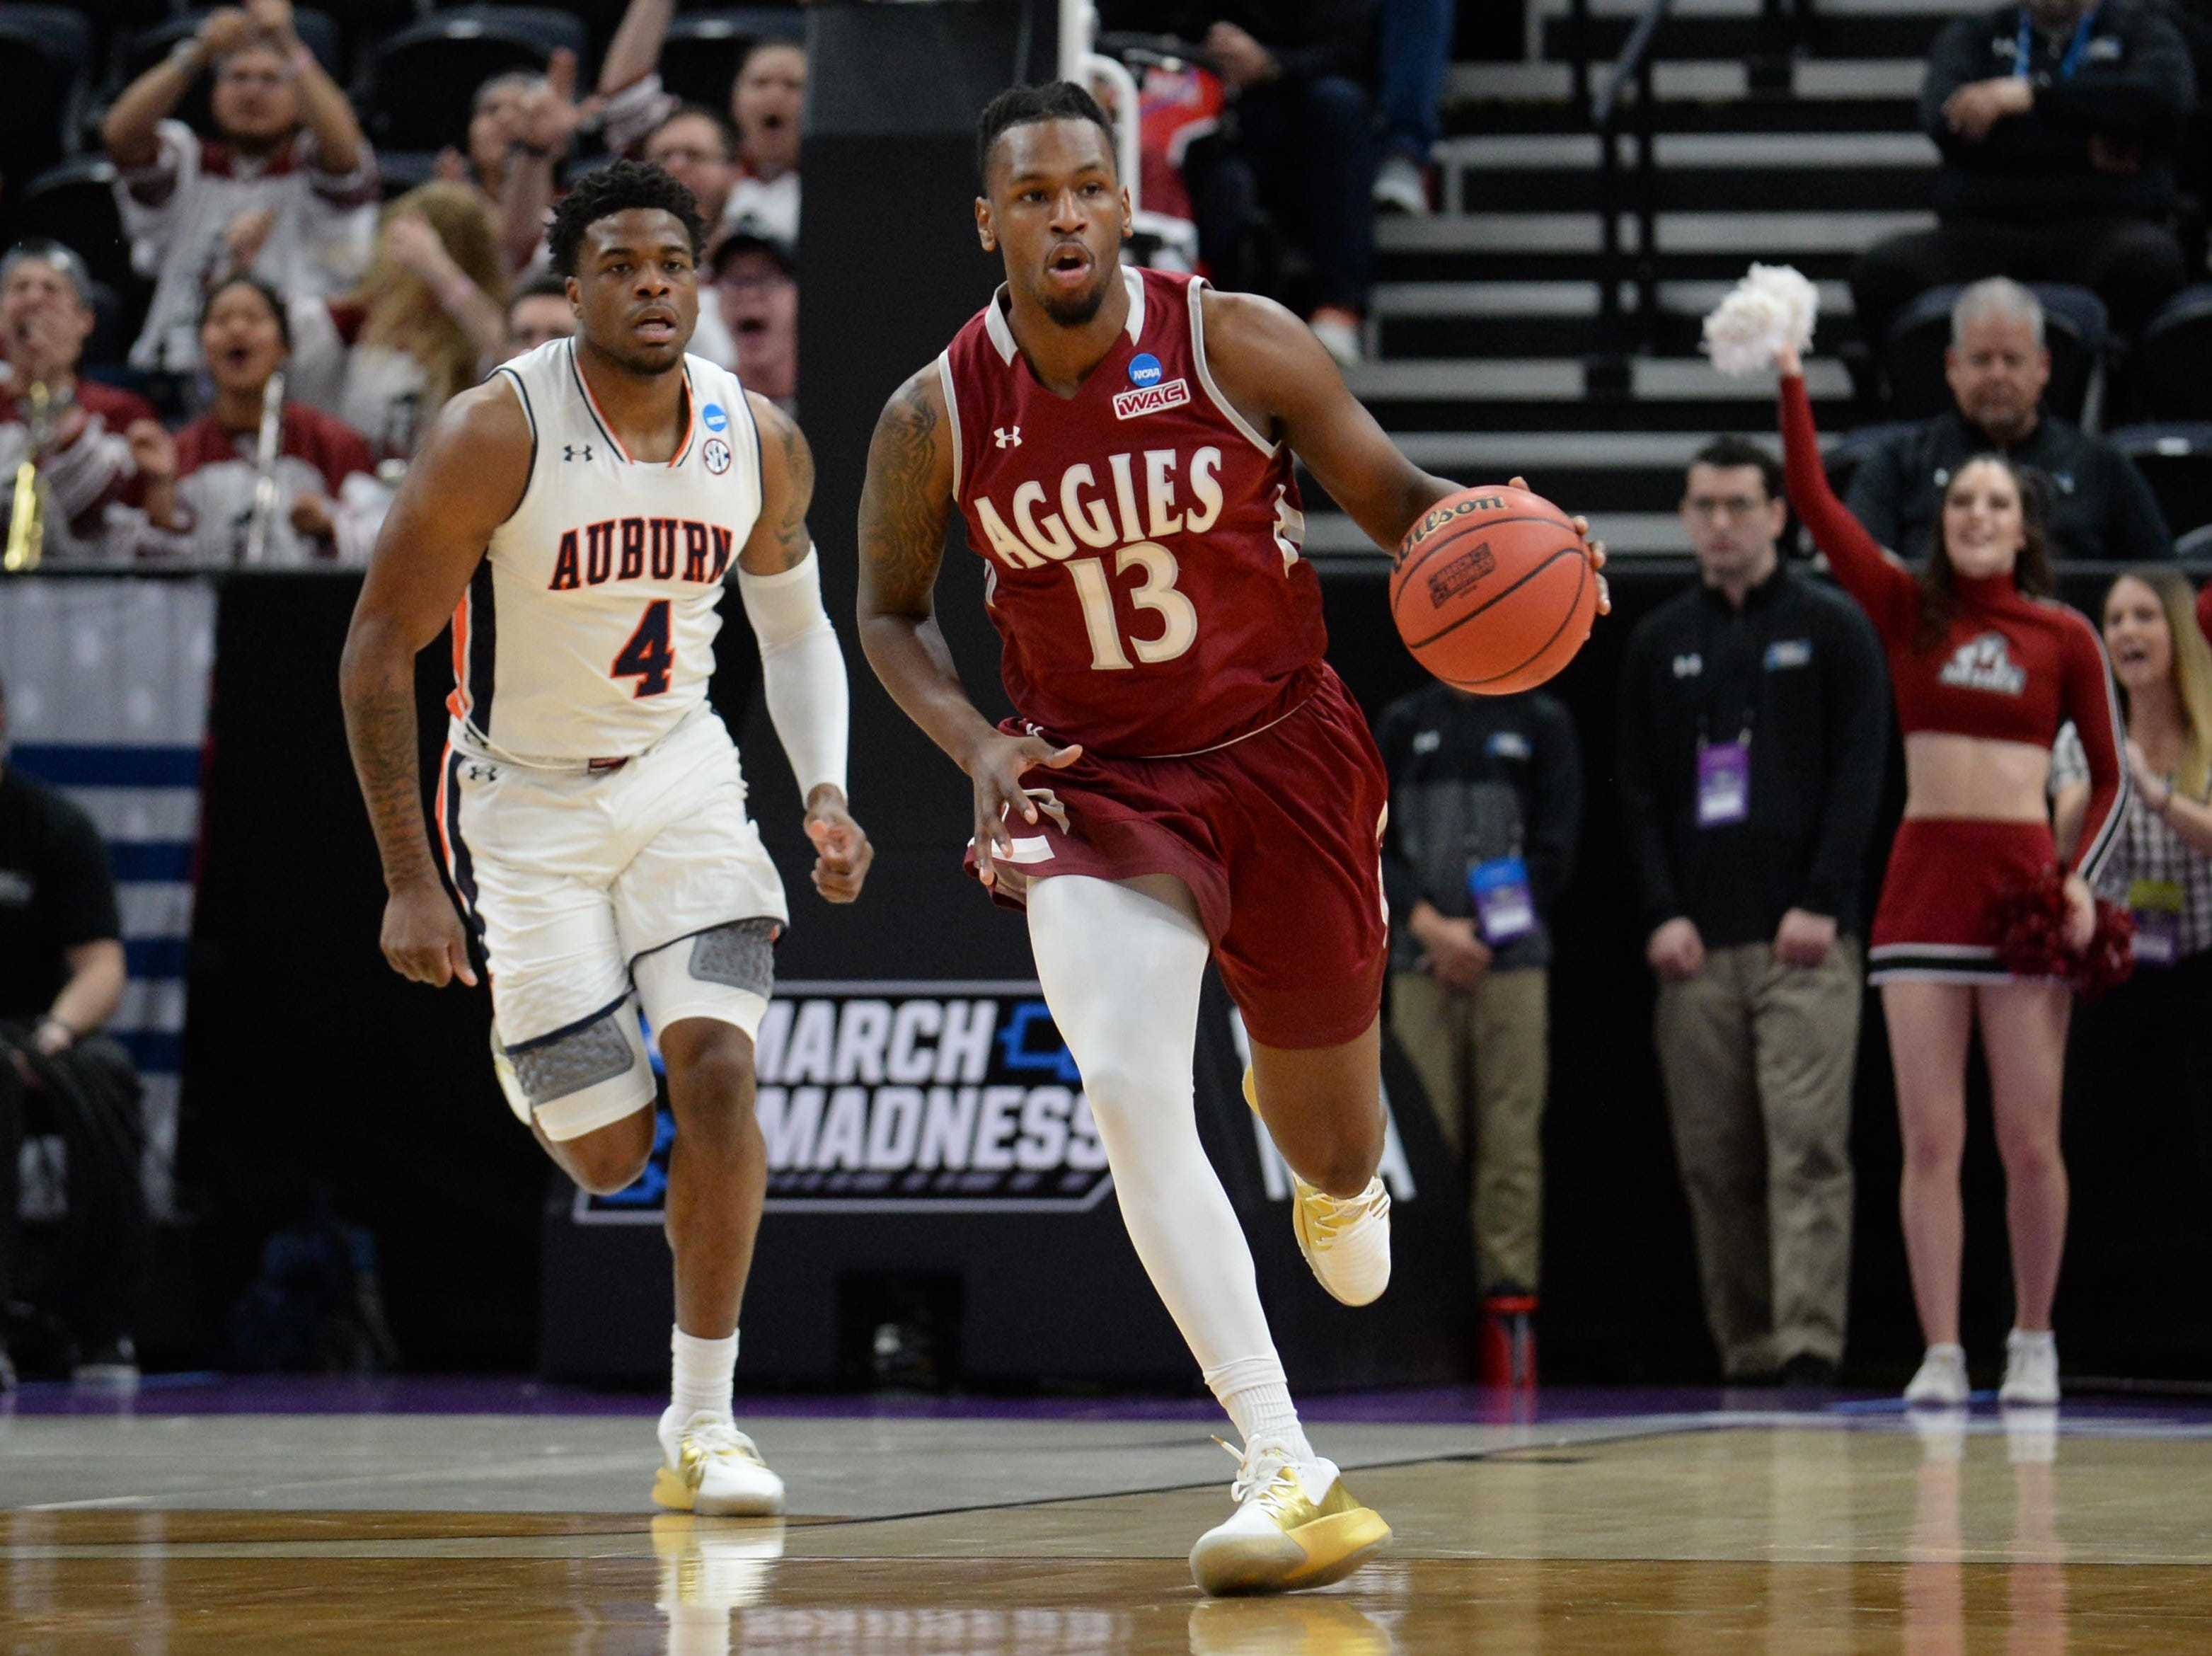 Mar 21, 2019; Salt Lake City, UT, USA; New Mexico State Aggies forward C.J. Bobbitt (13) brings the ball up court as Auburn Tigers guard Malik Dunbar (4) trails during the first half in the first round of the 2019 NCAA Tournament at Vivint Smart Home Arena. Mandatory Credit: Gary A. Vasquez-USA TODAY Sports